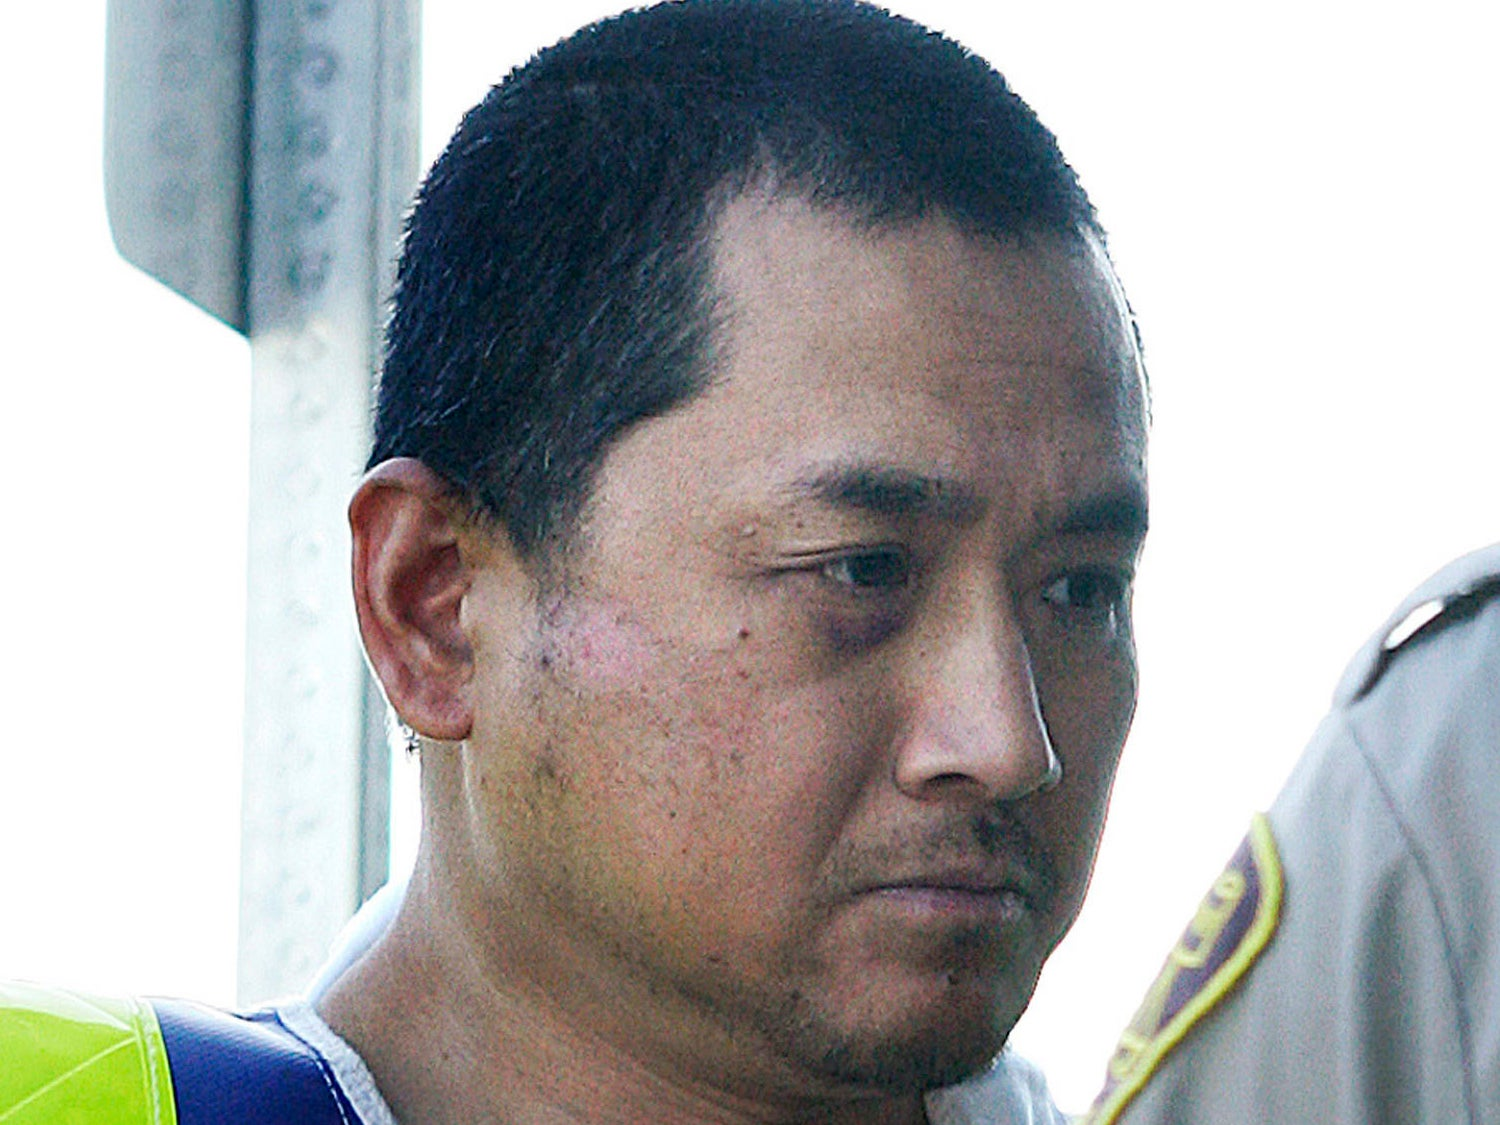 Mentally ill man who beheaded a bus passenger is freed from all supervision